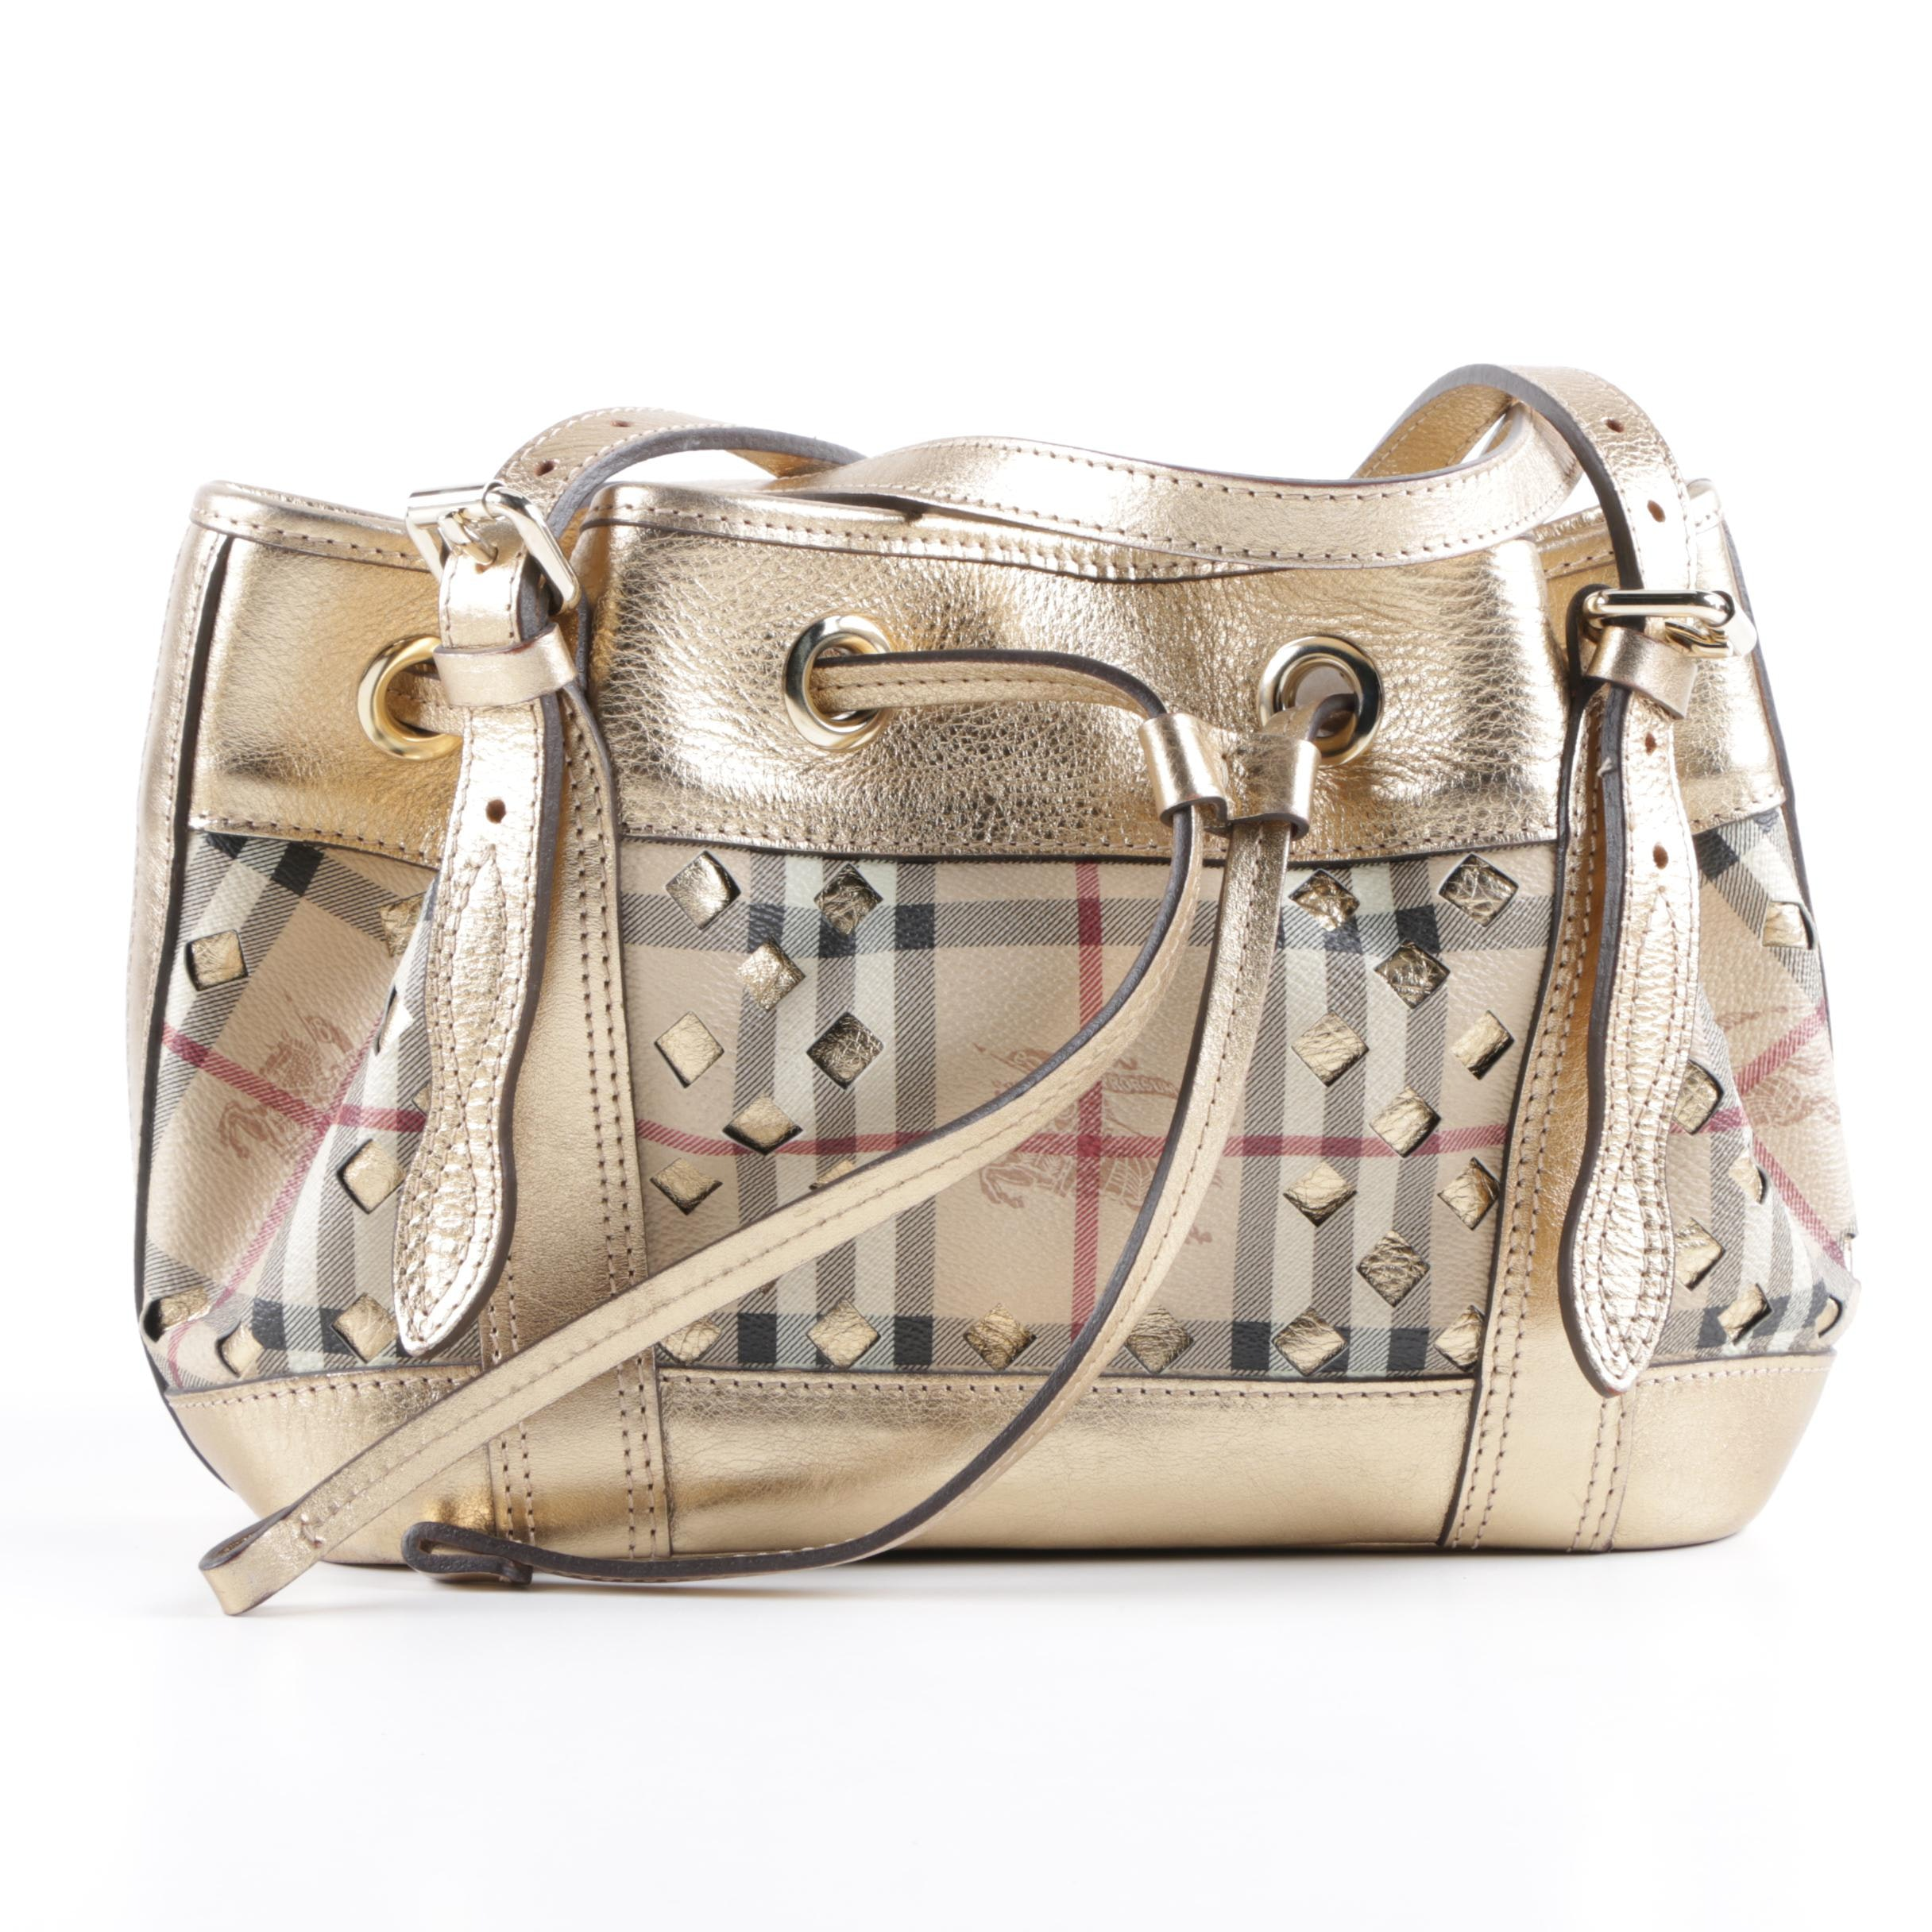 Burberry Haymarket Check Coated Canvas and Gold Metallic Leather Handbag